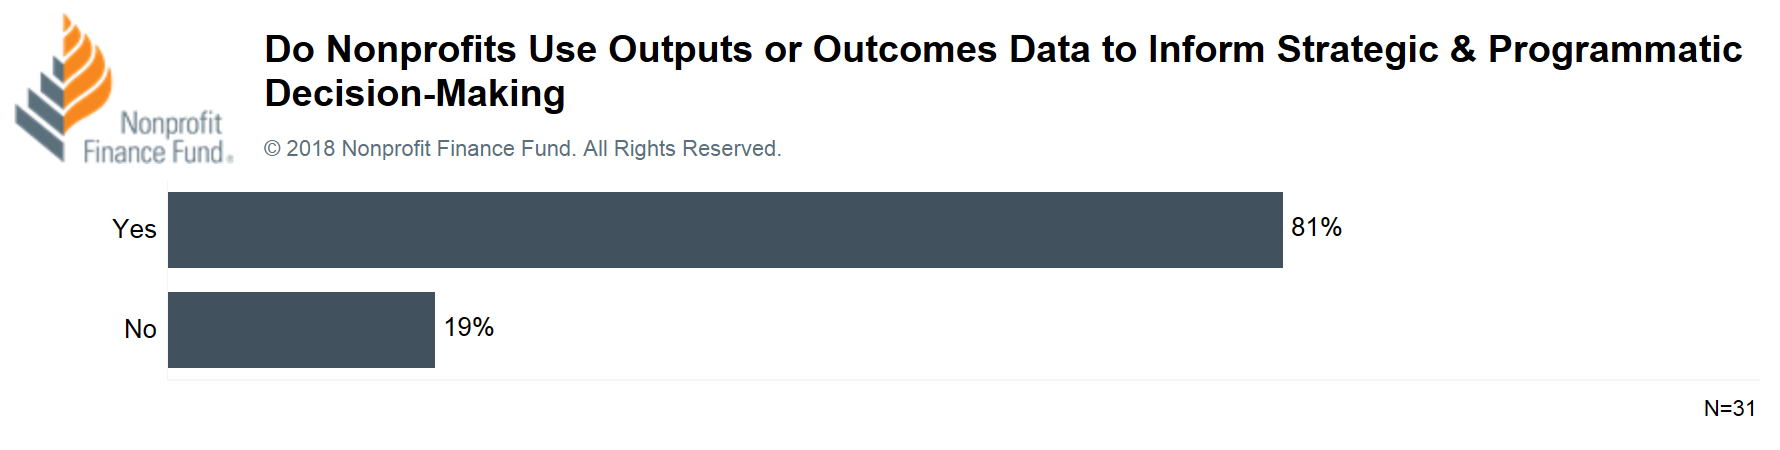 data-based decisions 2.png